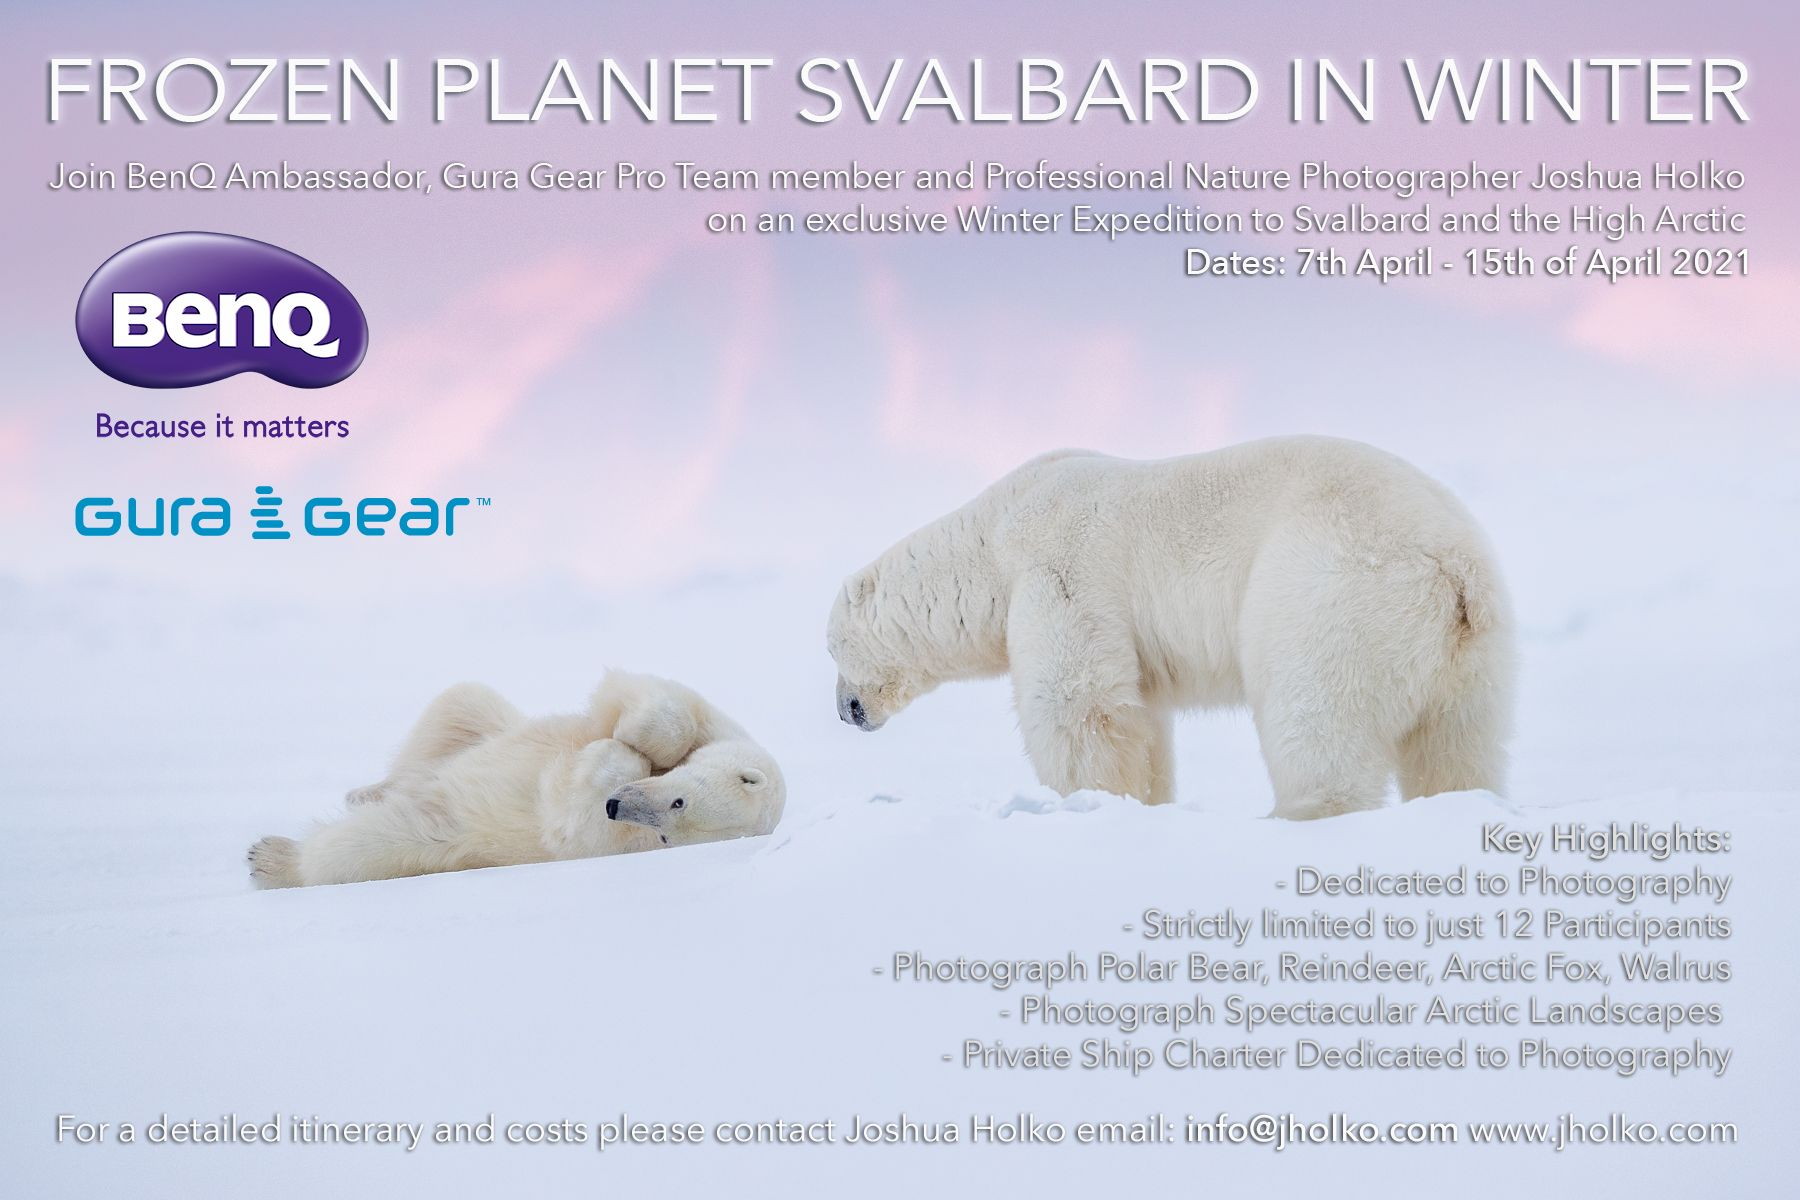 Frozen Planet Svalbard in Winter Expedition with Joshua Holko